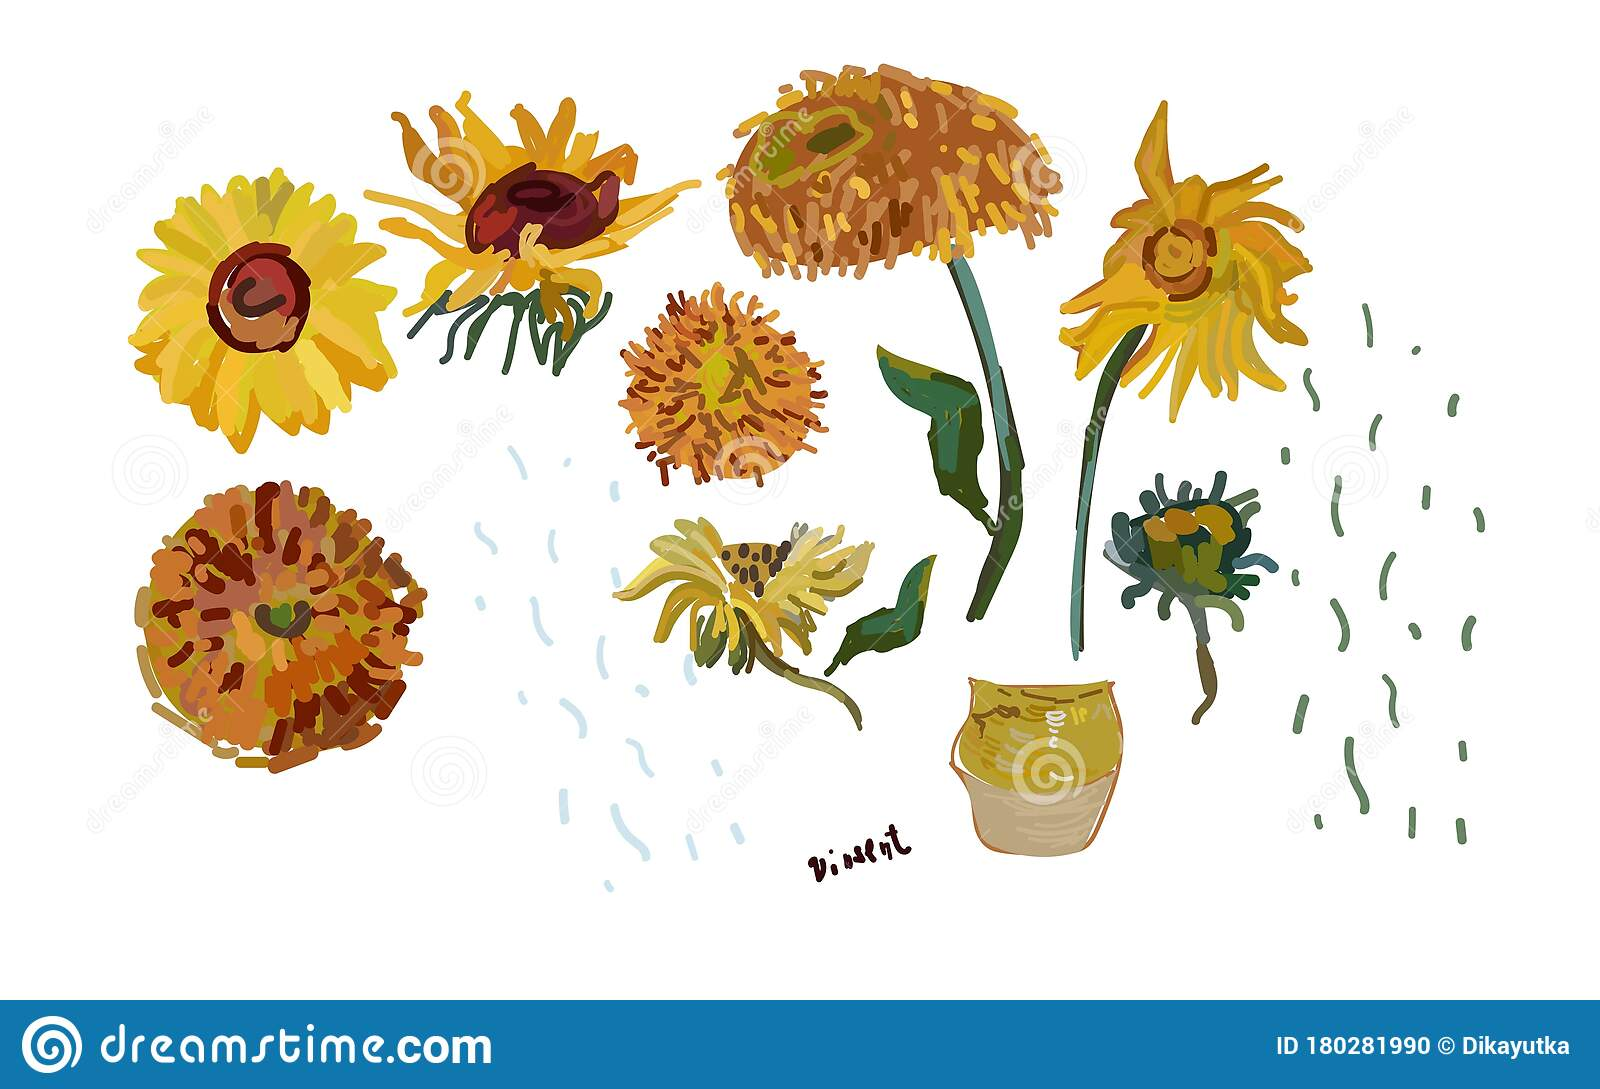 Narcissi flowers. Set of colored flowers. Illustration , #spon, #flowers,  #Narcissi, #Set, #Illustration, #colored | Narcissus flower, Illustration,  Narcissus